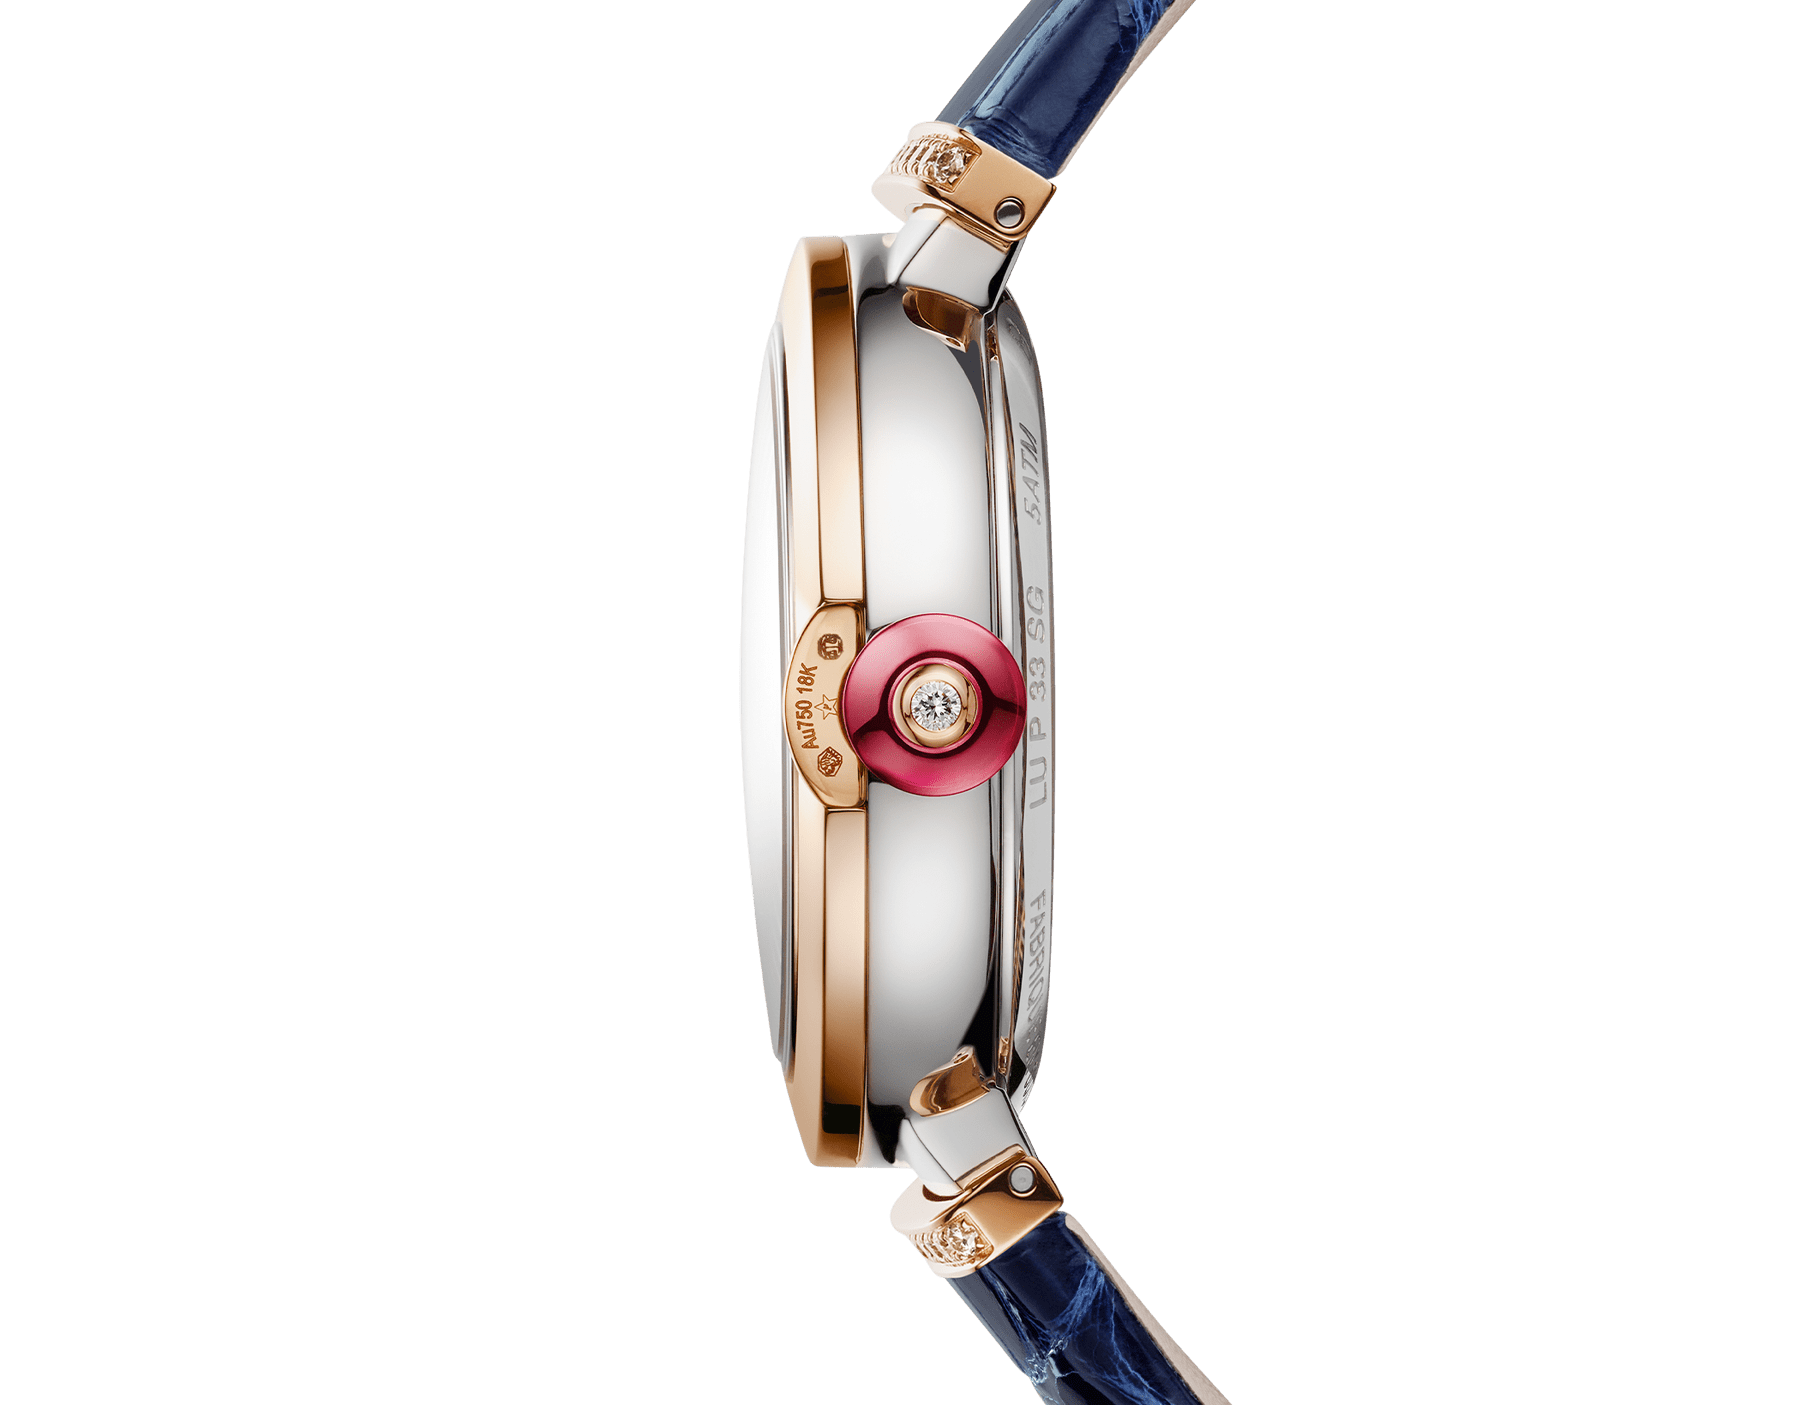 LVCEA Skeleton watch with mechanical manufacture movement, automatic winding and skeleton execution, stainless steel and 18 kt rose gold case, 18 kt rose gold openwork BVLGARI logo dial set with brilliant-cut diamonds and blue alligator bracelet with 18 kt rose gold links set with diamonds 103502 image 3